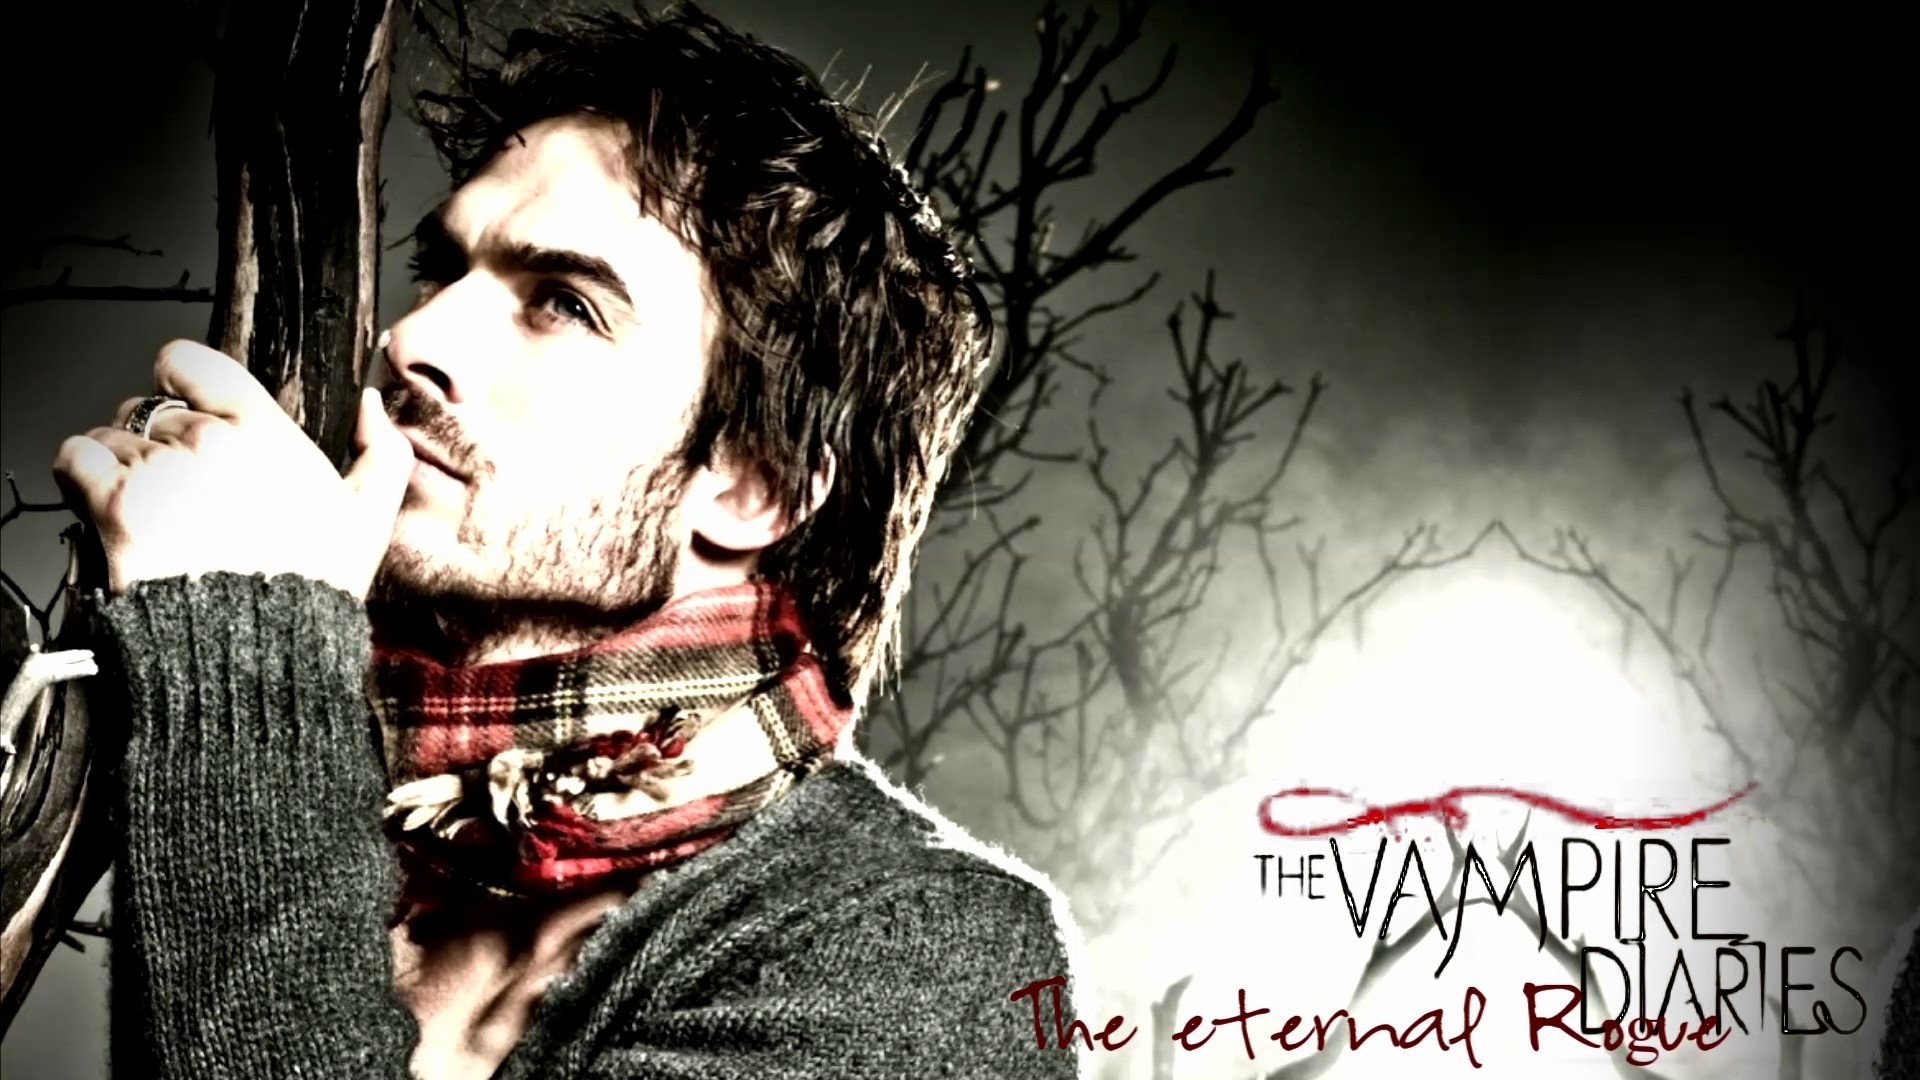 1920x1080 0 1920x1200 Vampire Wallpapers  tv series vampire diaries hd  wallpaper | Background Wallpapers for.